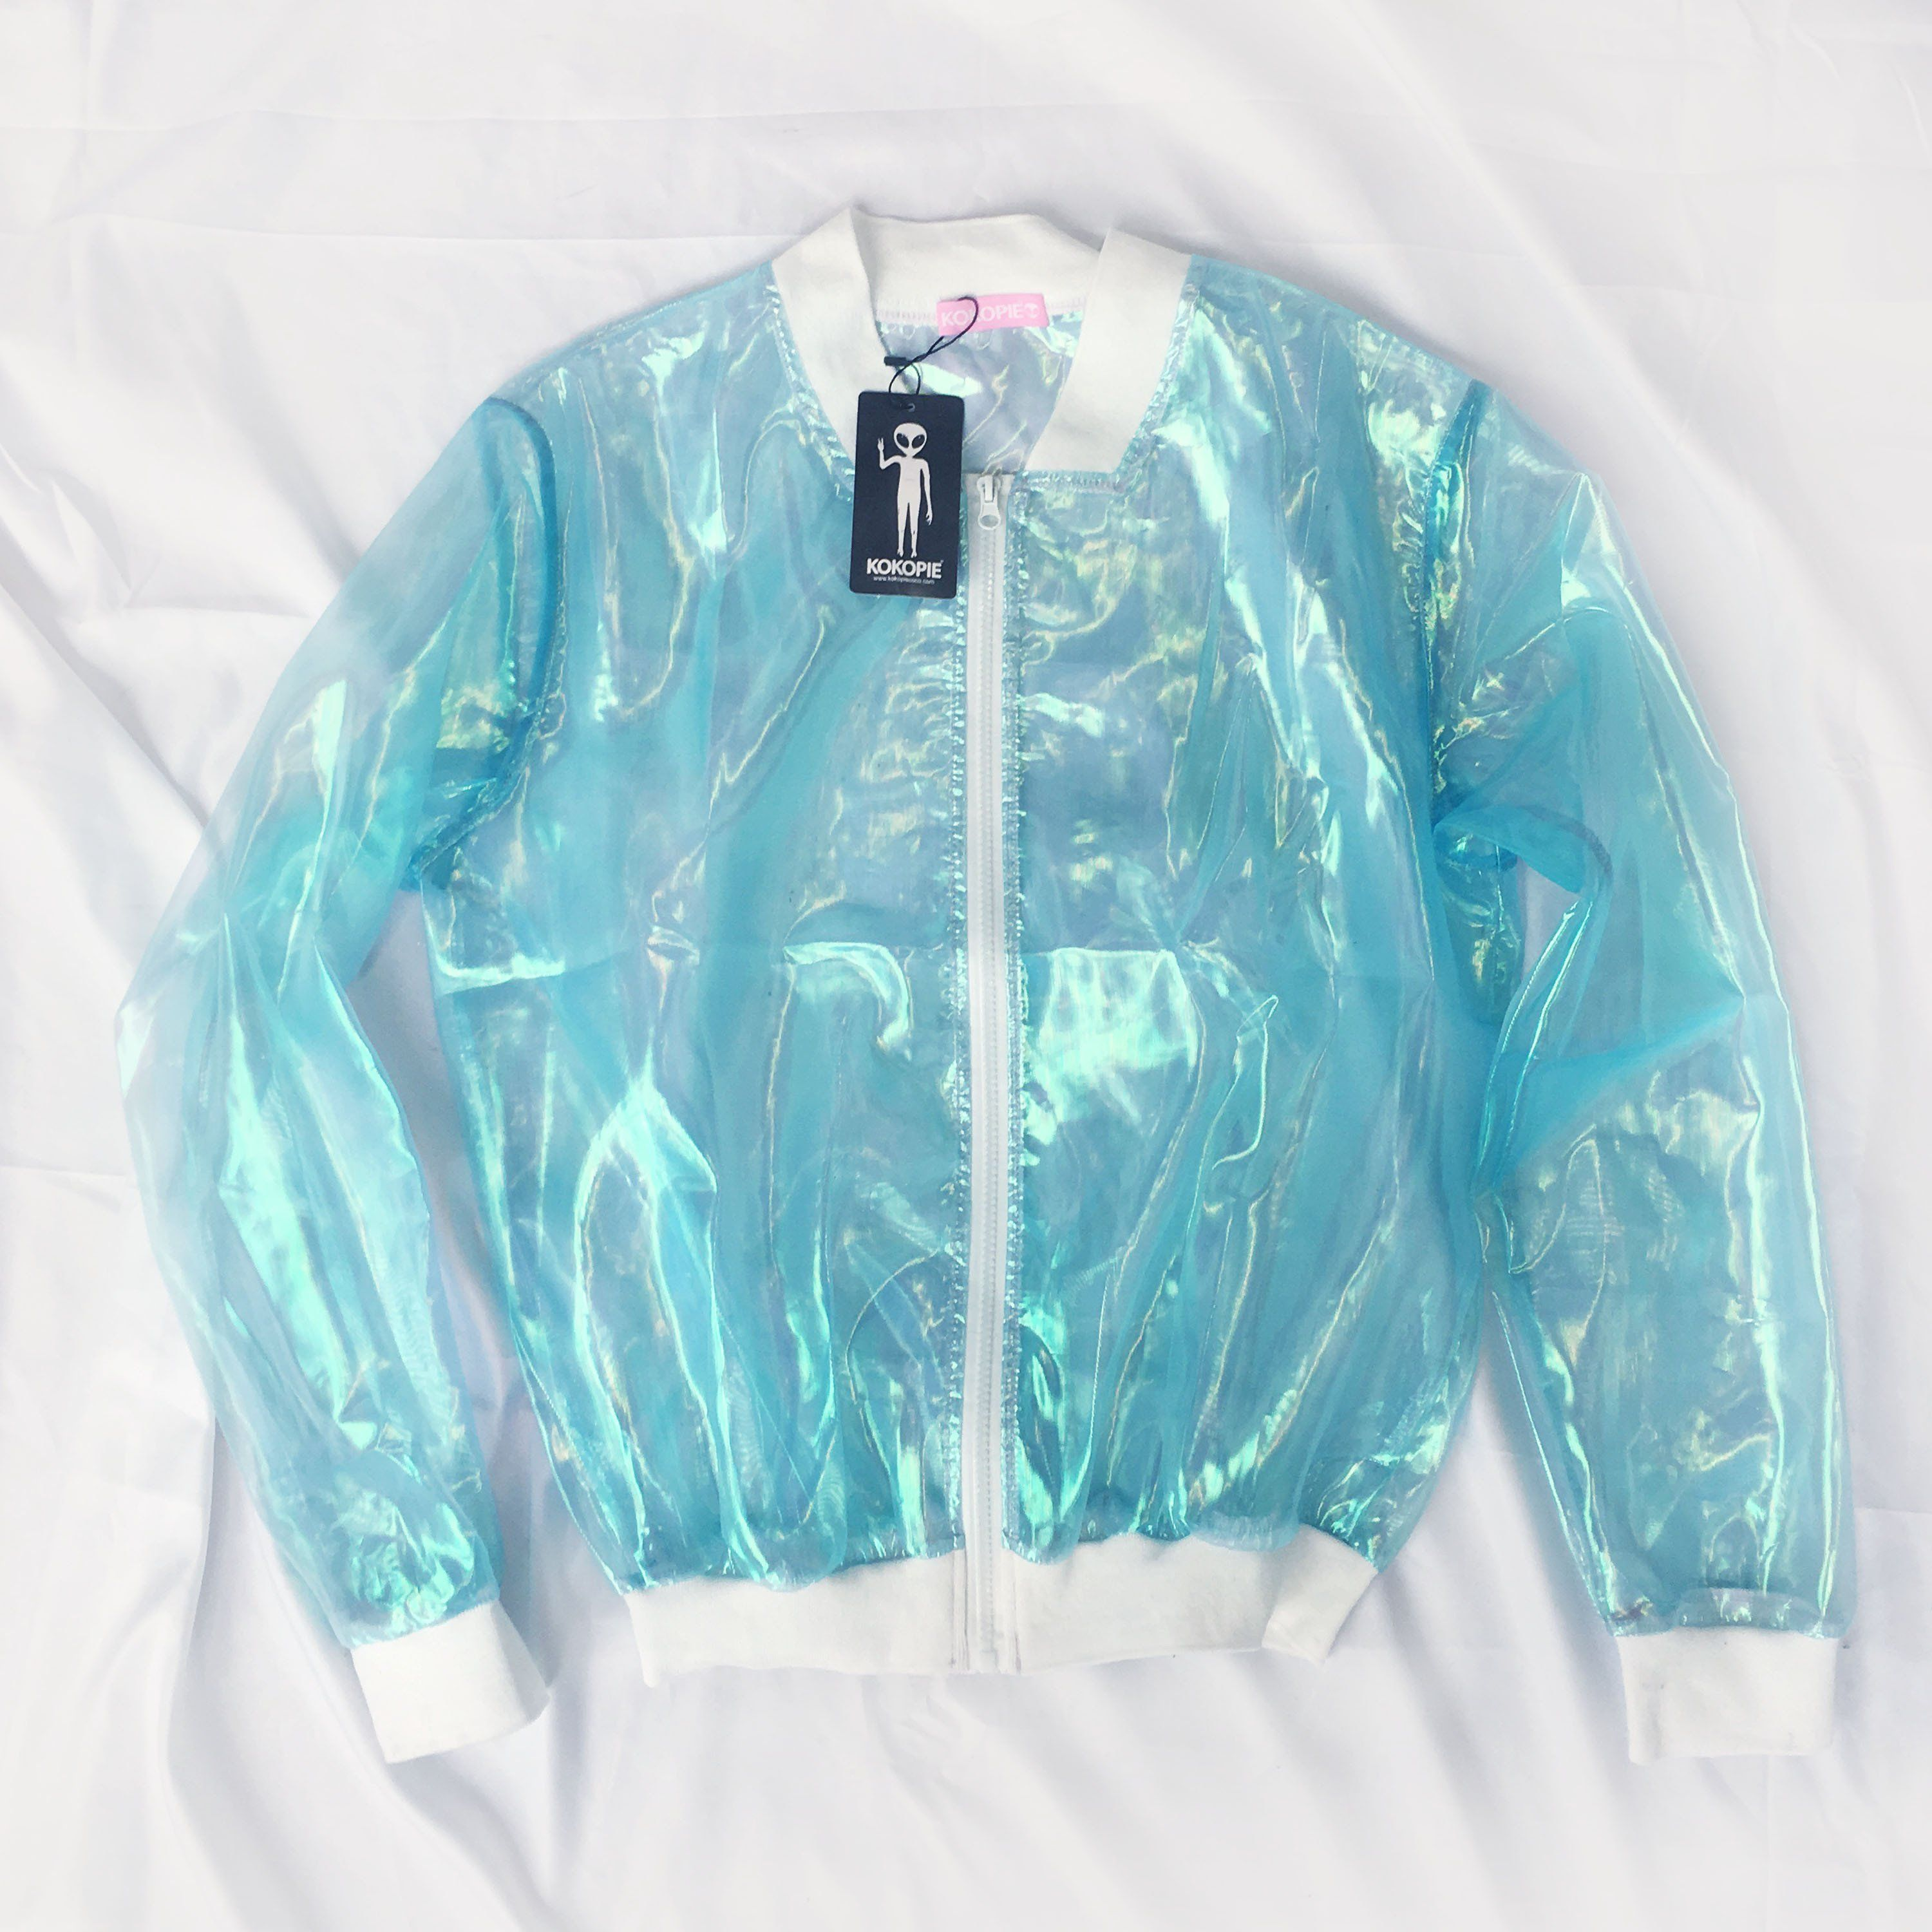 Koko blue holo sheer jacket in clothes pinterest jackets